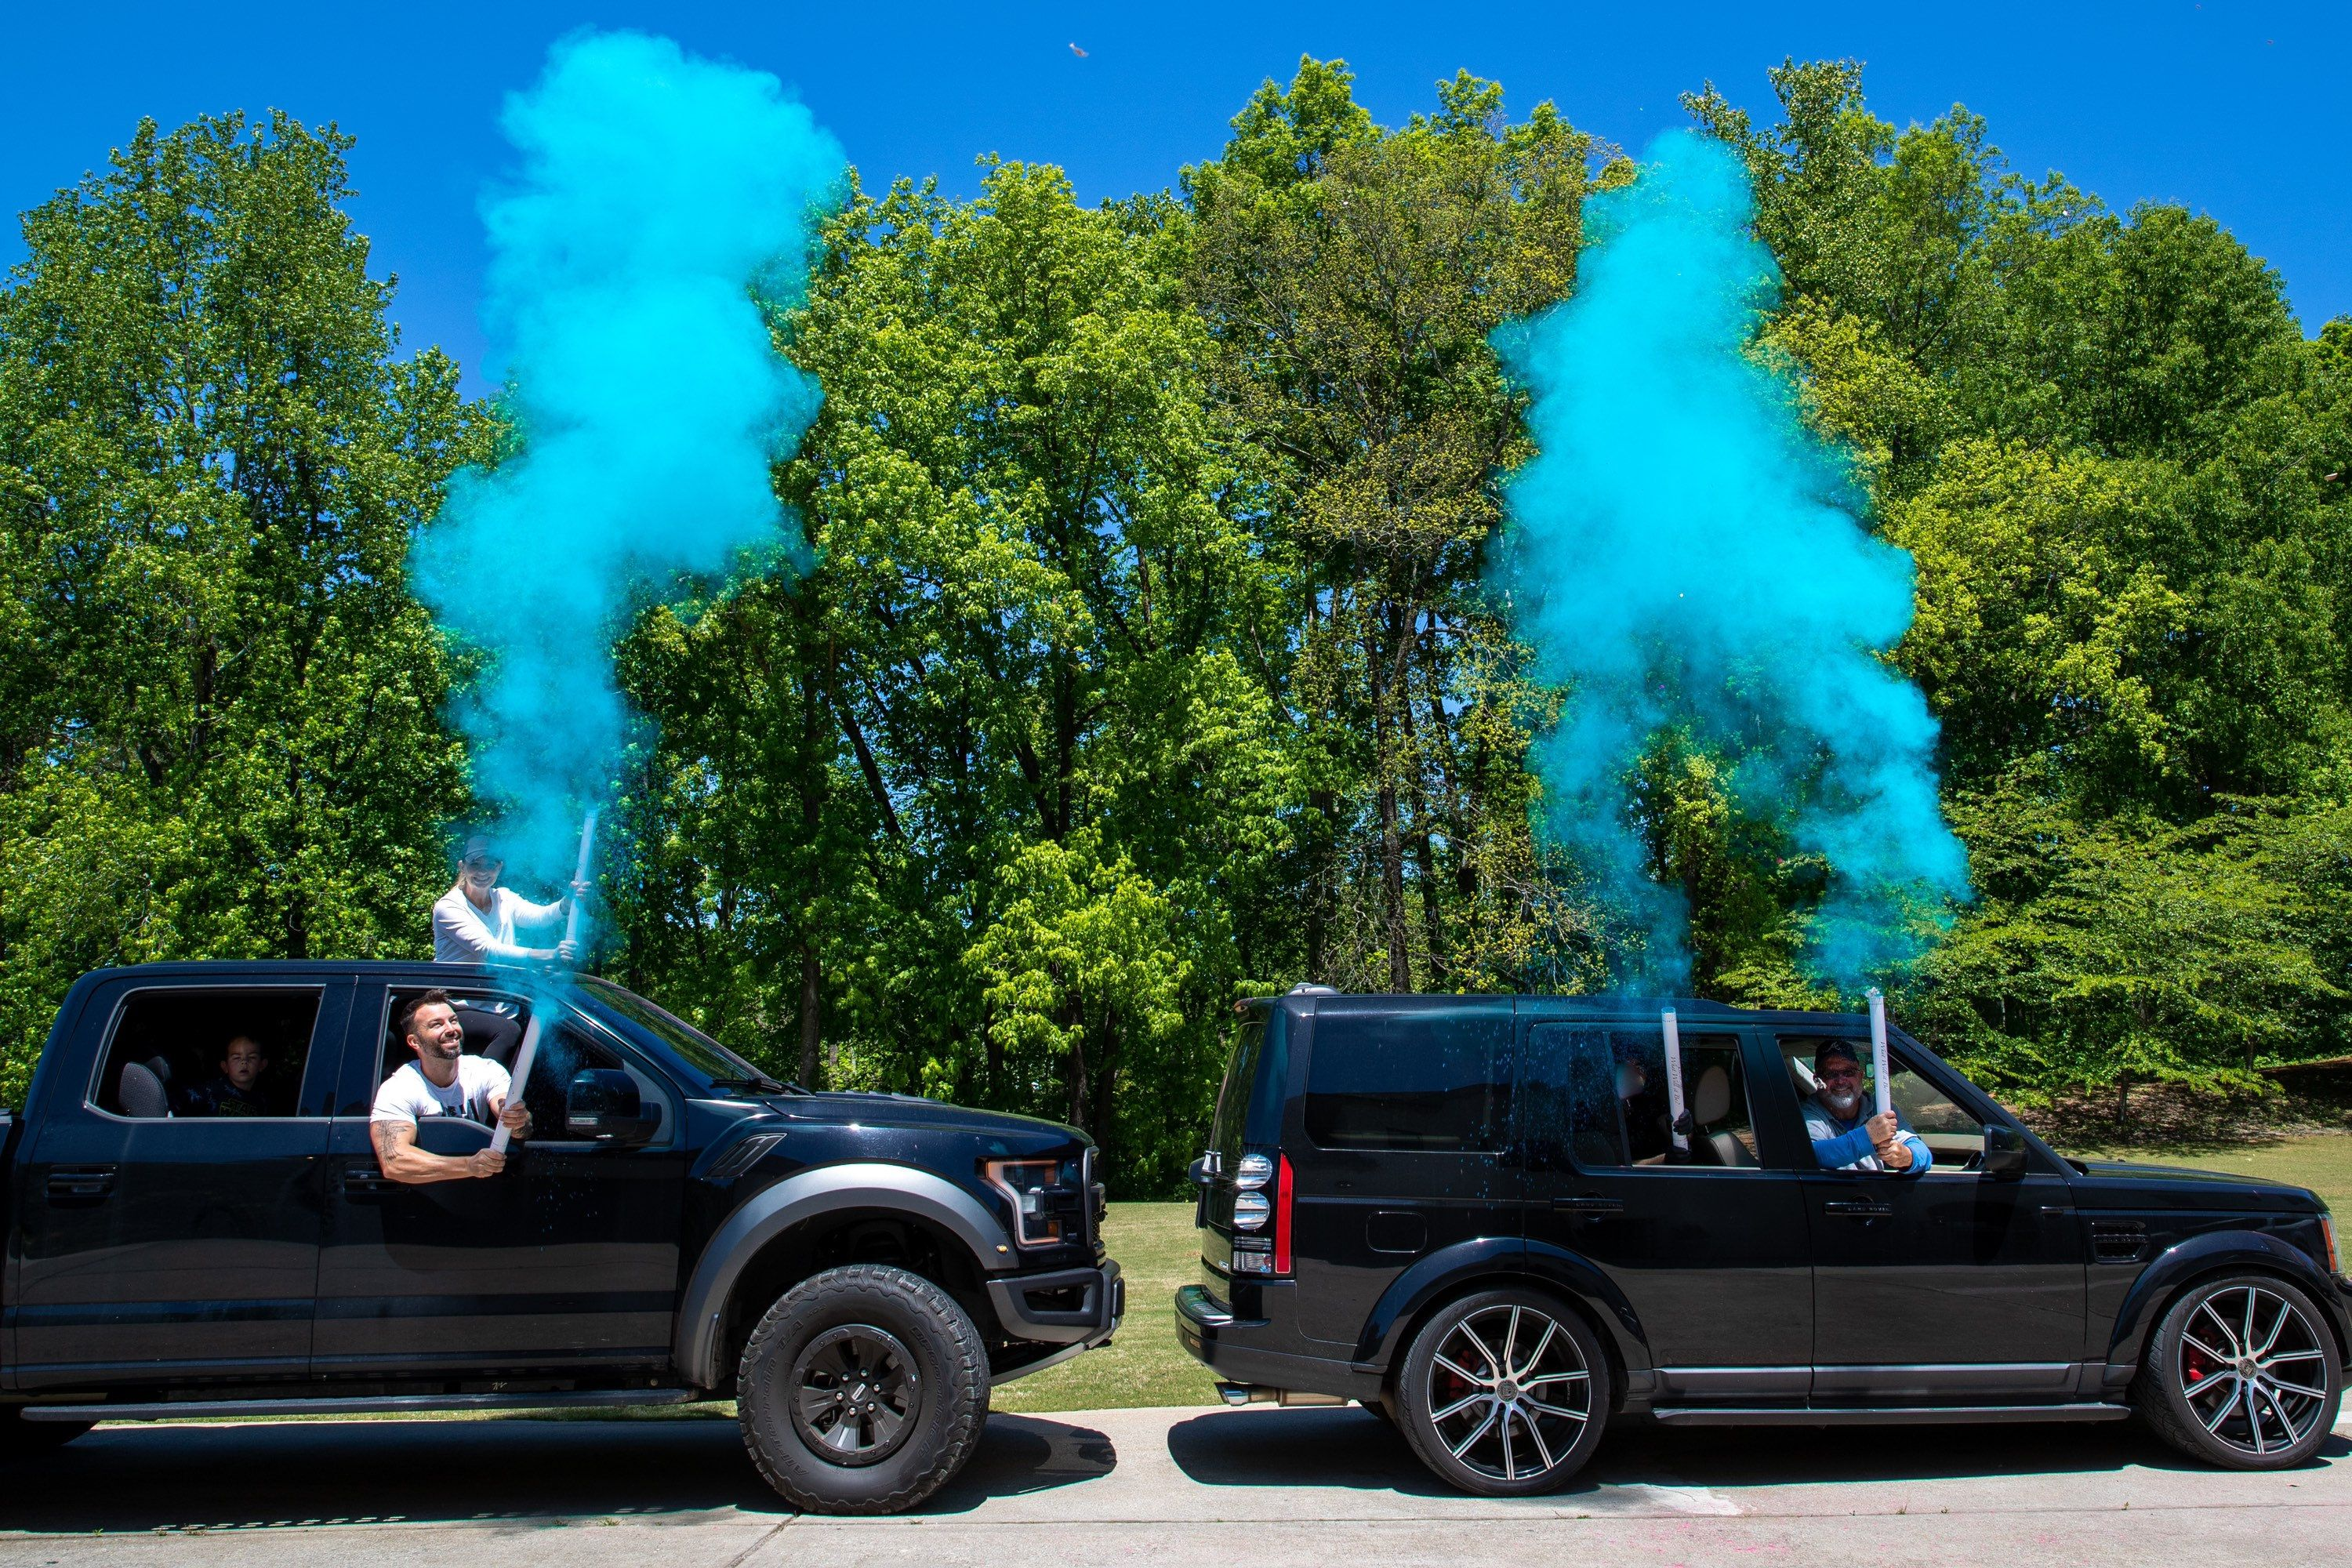 Drive by birthday party parade cannons 24 smoke powder